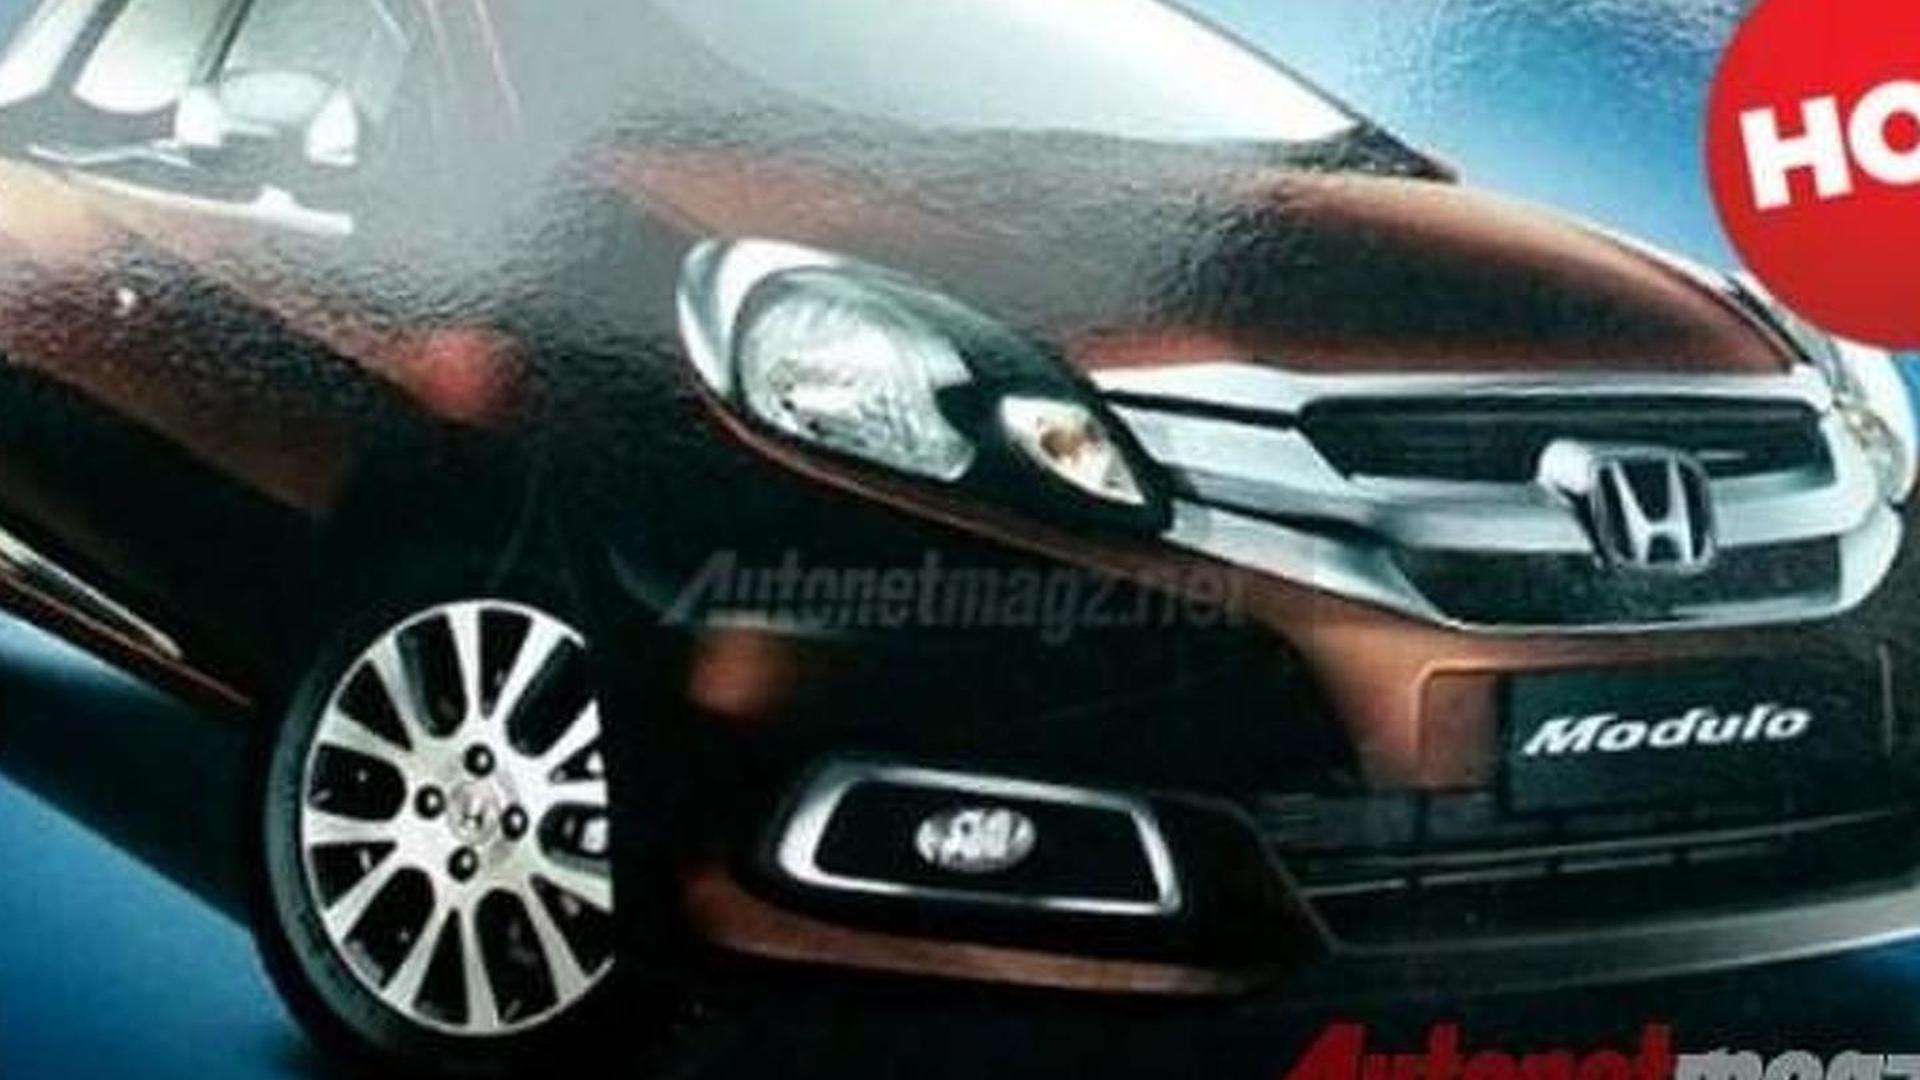 Honda Mobilio production version with accessory kit leaked